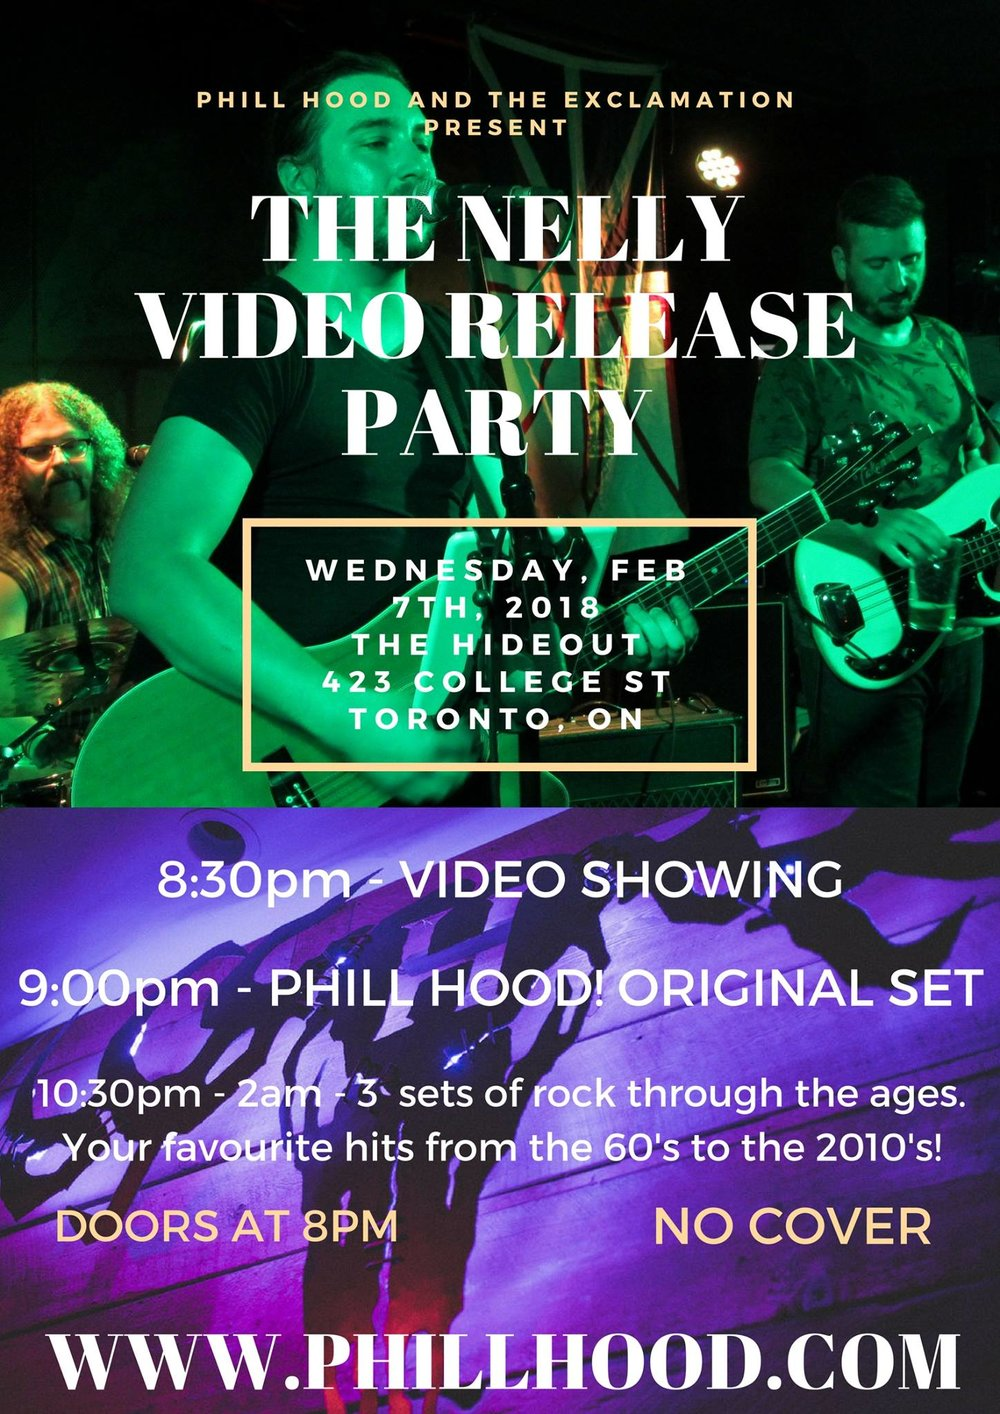 "Hey Toronto! It's been awhile, hasn't it? We invite you to come out to The Hideout Toronto on February 7th for our official video release party for ""Nelly"". We'll be doing a showing of the video on The Hideout's sweet projector screens and top notch sound system before hitting the stage to do a complete original set for you all, followed by 3 sets of covers! You'll also be happy to know that there will be no cover, but we will have plenty of merch for sale for those of you who would like to take our music home with you. Can't wait to see you all there!  8PM - Doors 8:30PM - Video Showing 9PM - Original Set 10:30pm - 2am - The Exclamation plays all of your favourite covers!  This event is made possible and sponsored by  The Hideout Toronto  and  A Feedback Loop  Podcast."